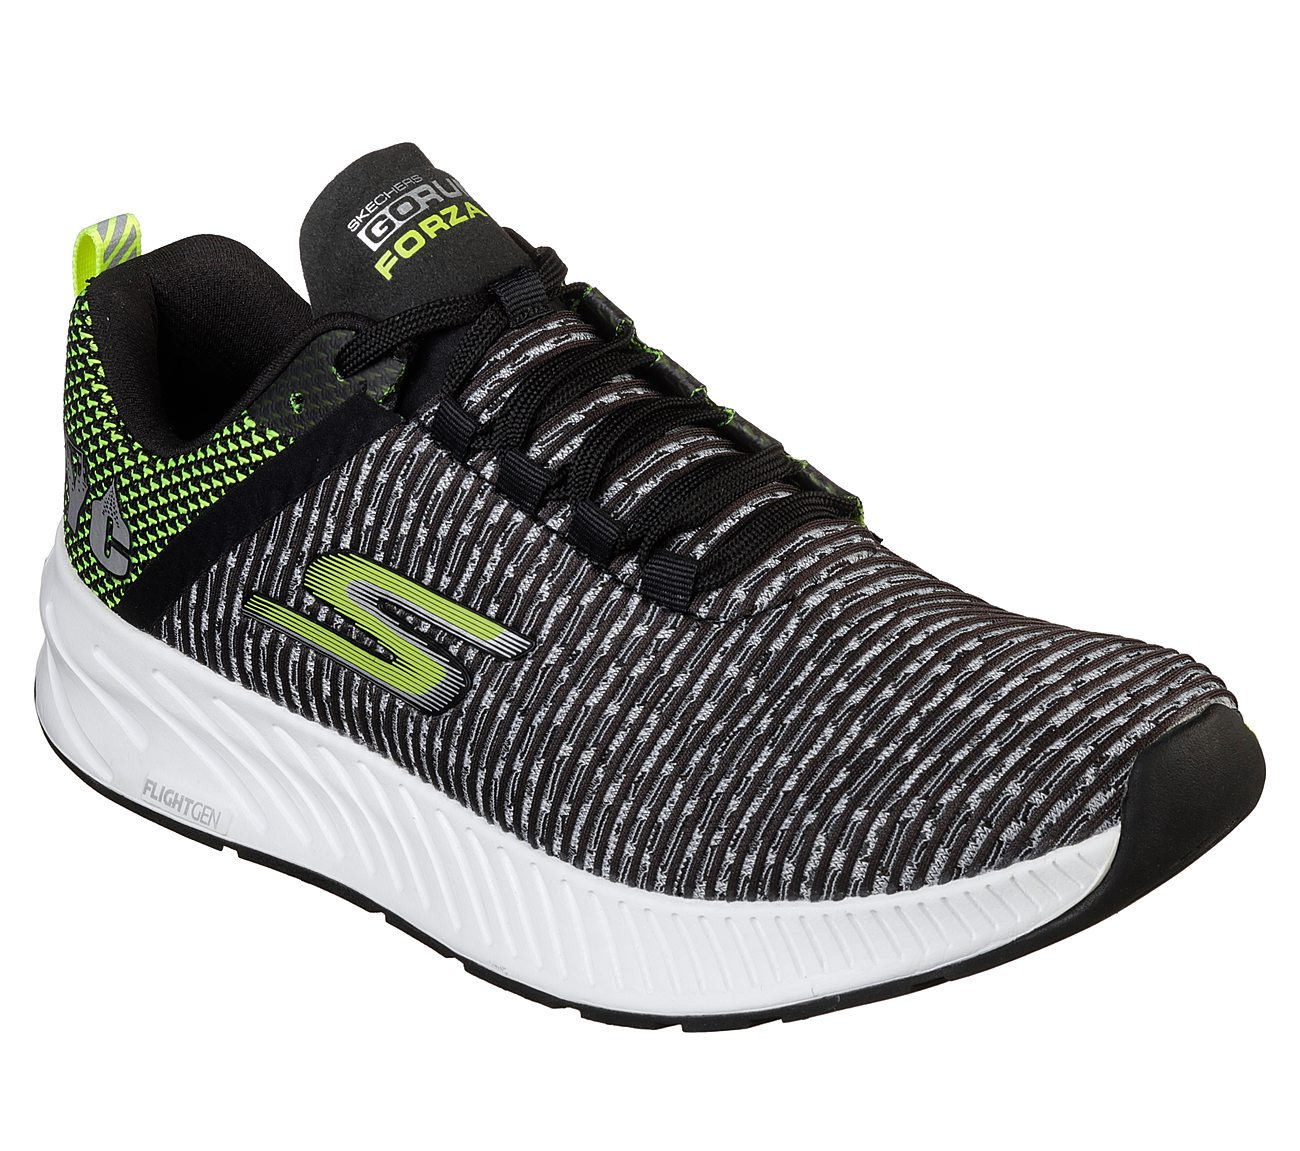 6aacef6c Buy SKECHERS Skechers GOrun Forza 3 - NYC 2018 Skechers Performance ...